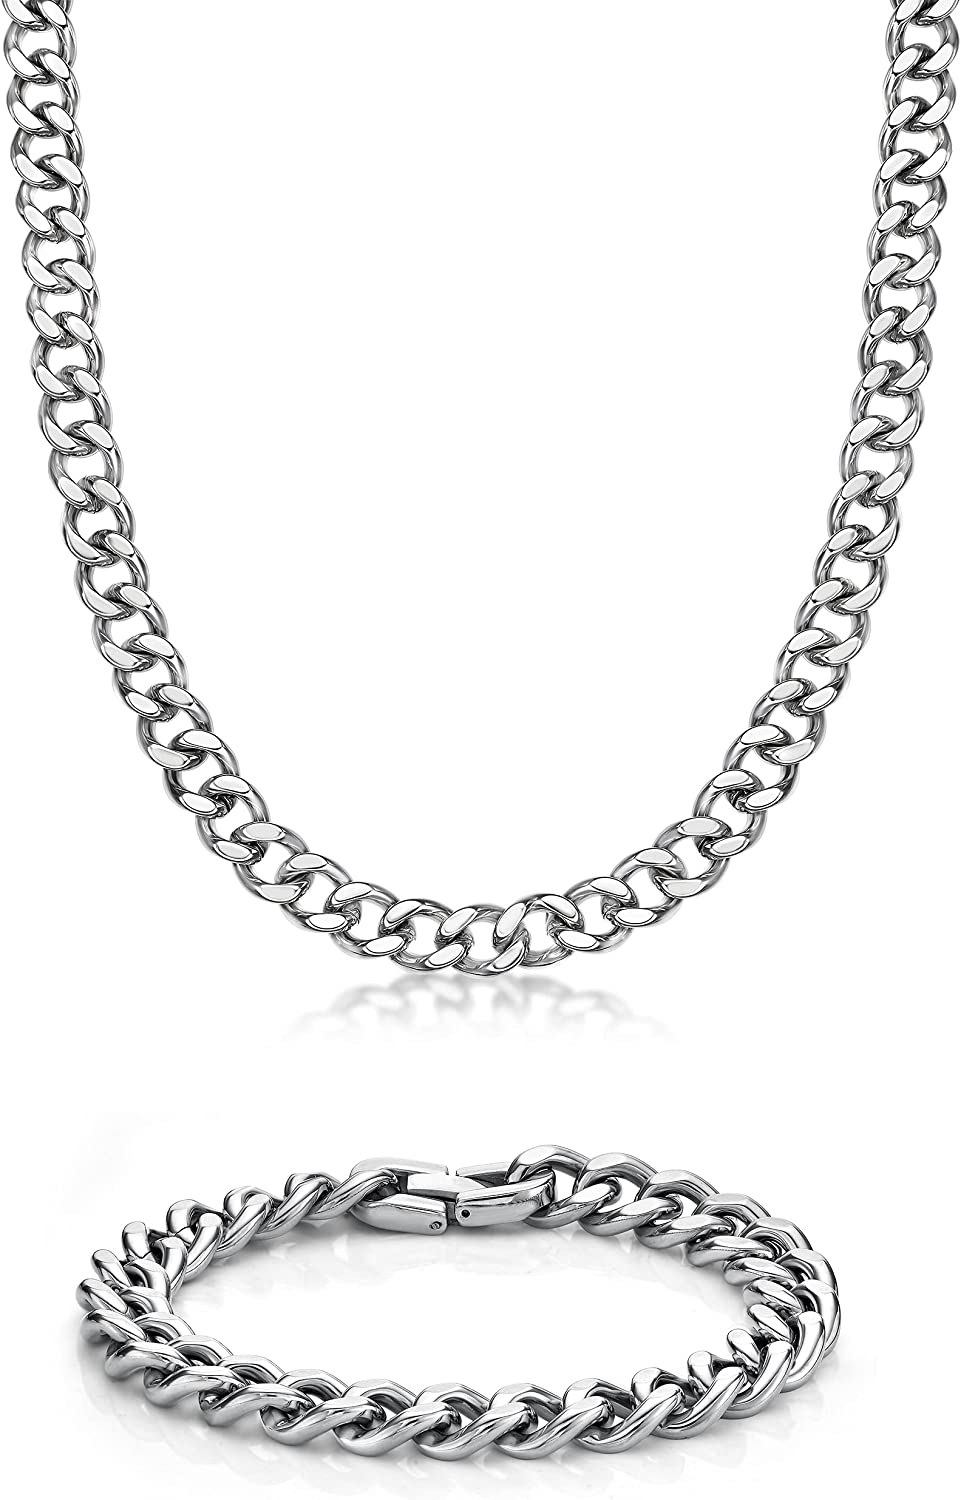 Stephanie Imports Stainless Steel Curb Chain 22